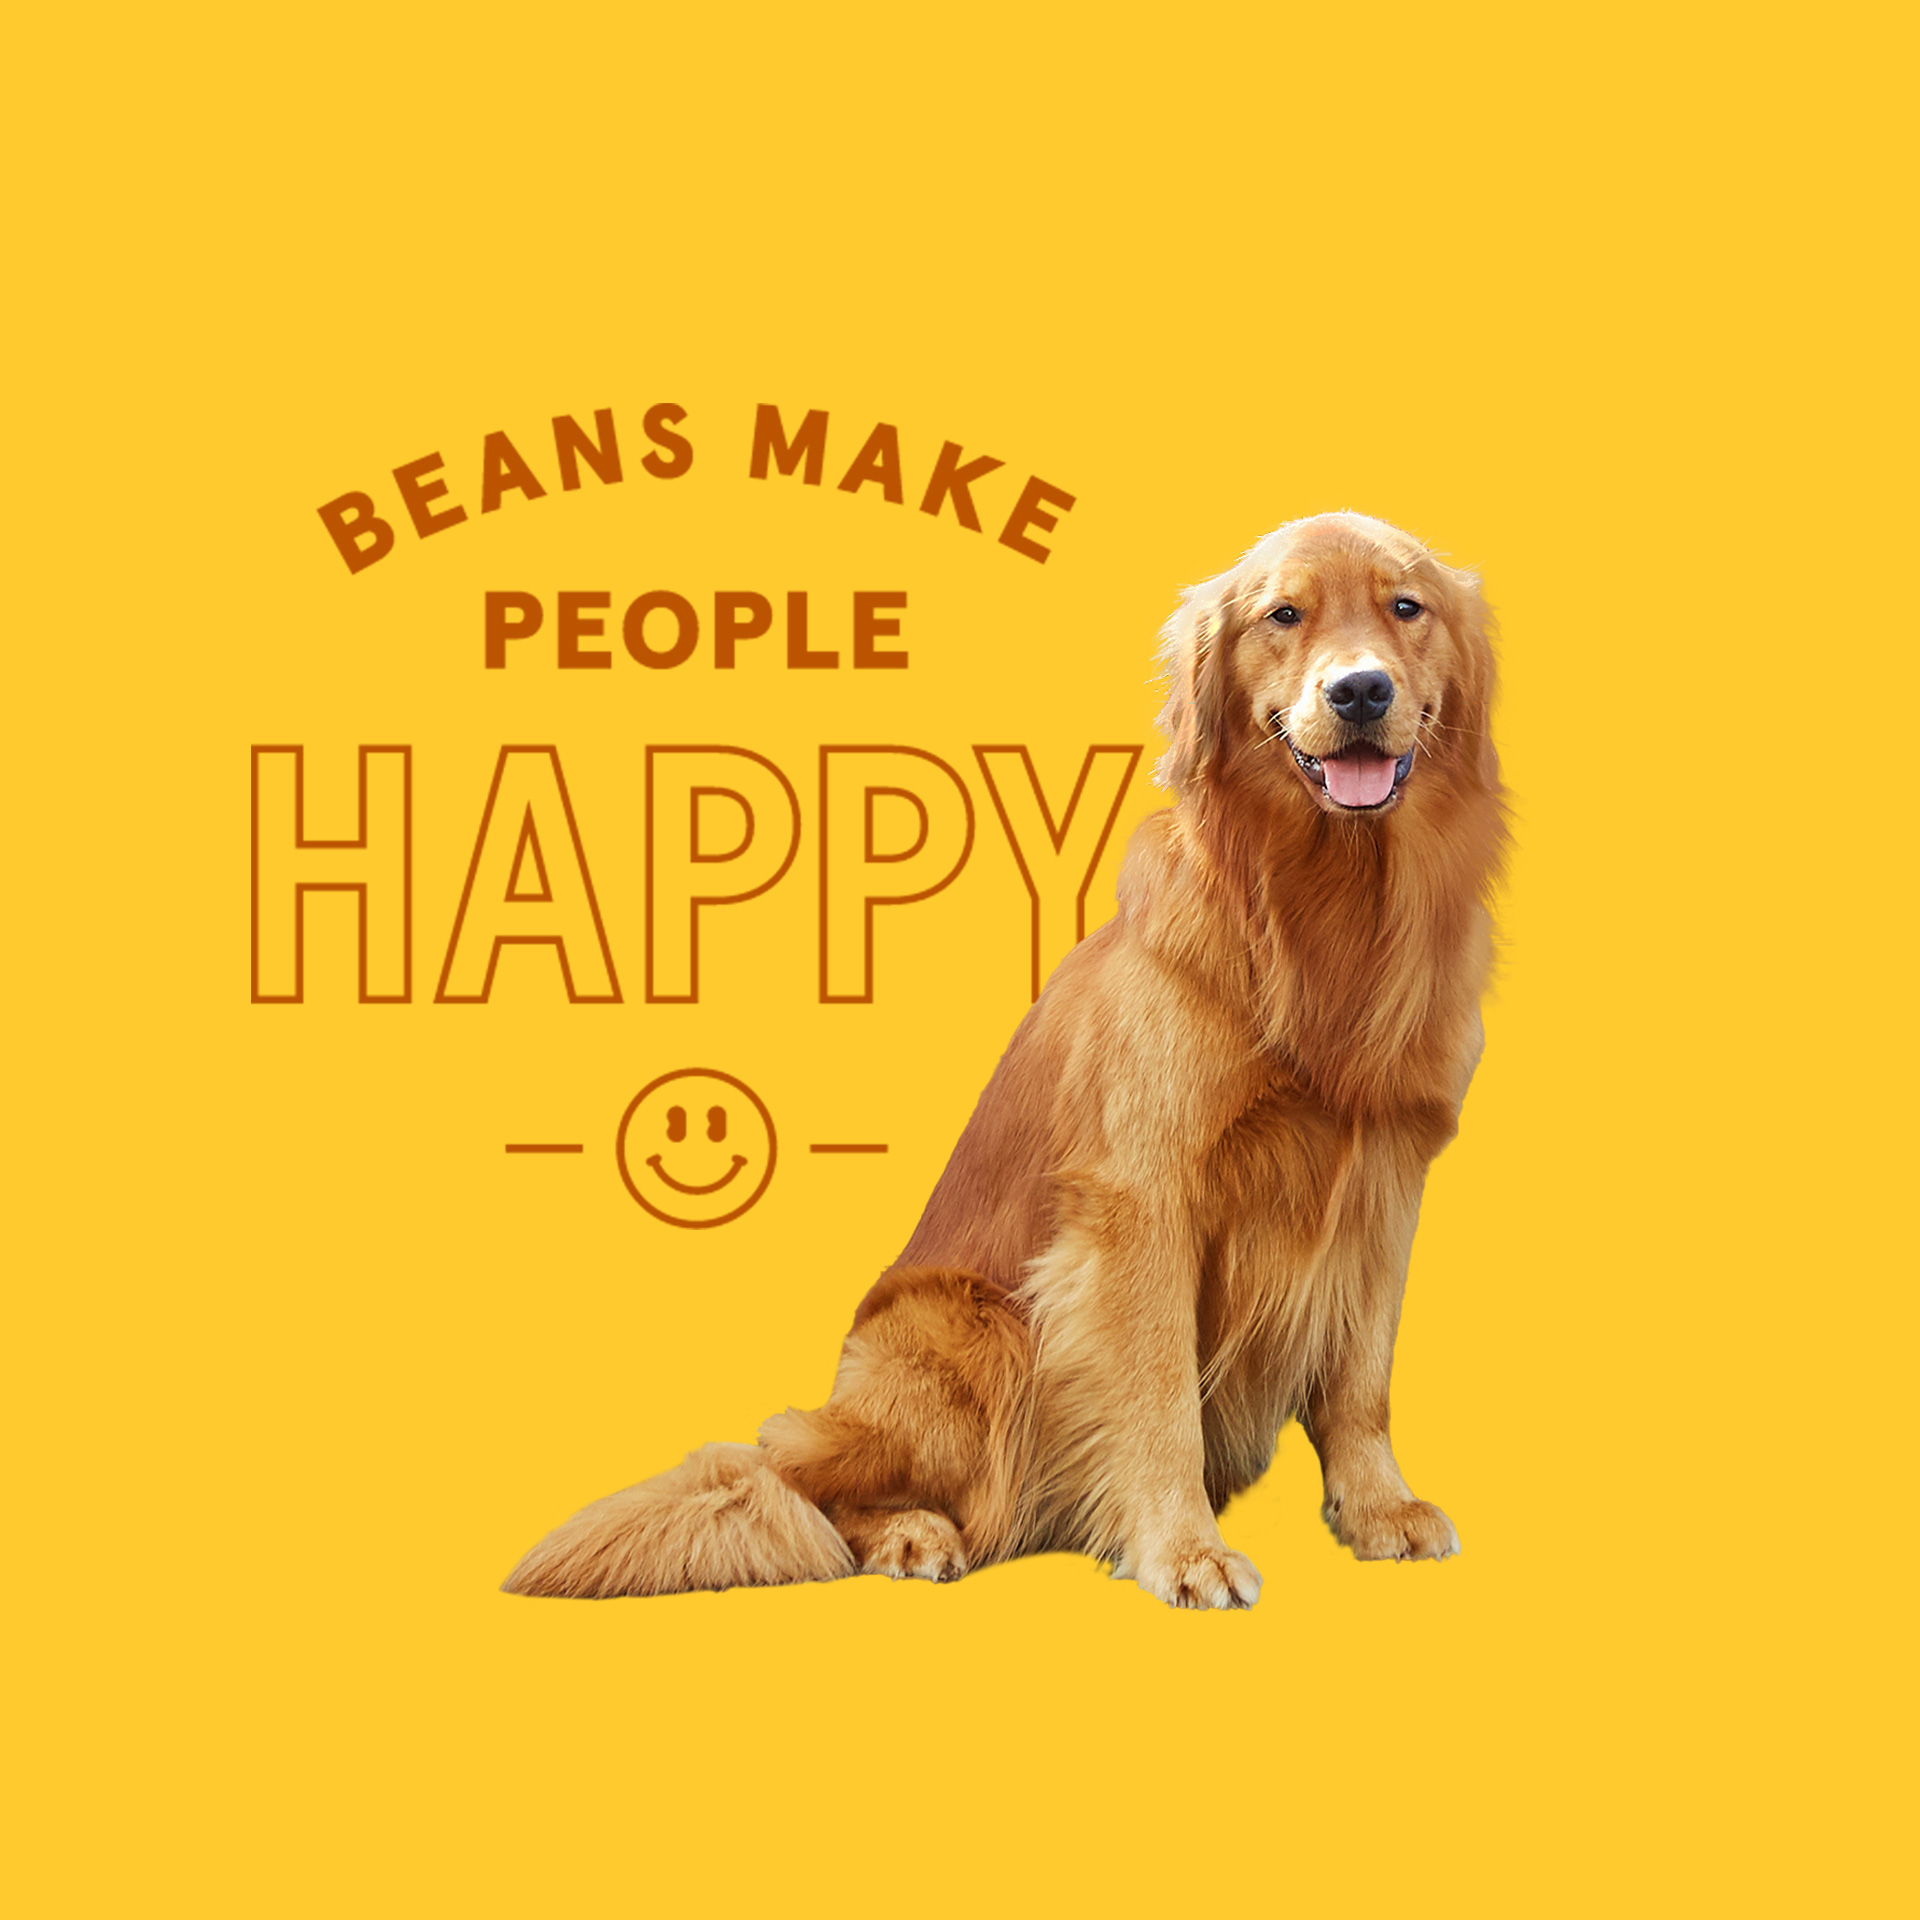 A picture of a tan dog next to the words Beans Make People Happy with a smiley face below